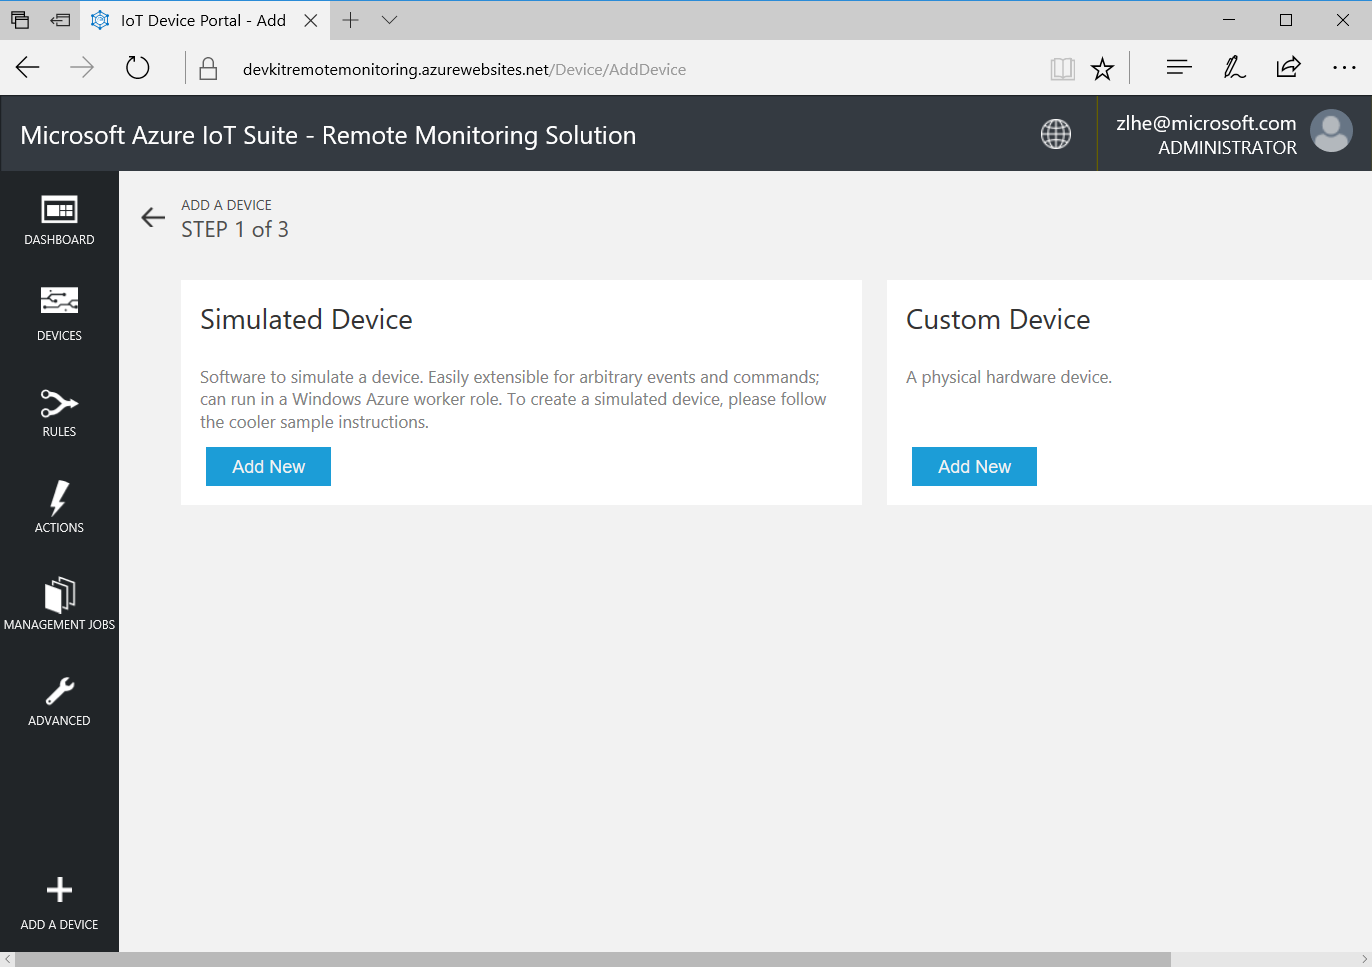 remote-monitoring-azure-iot-suite-add-new-device